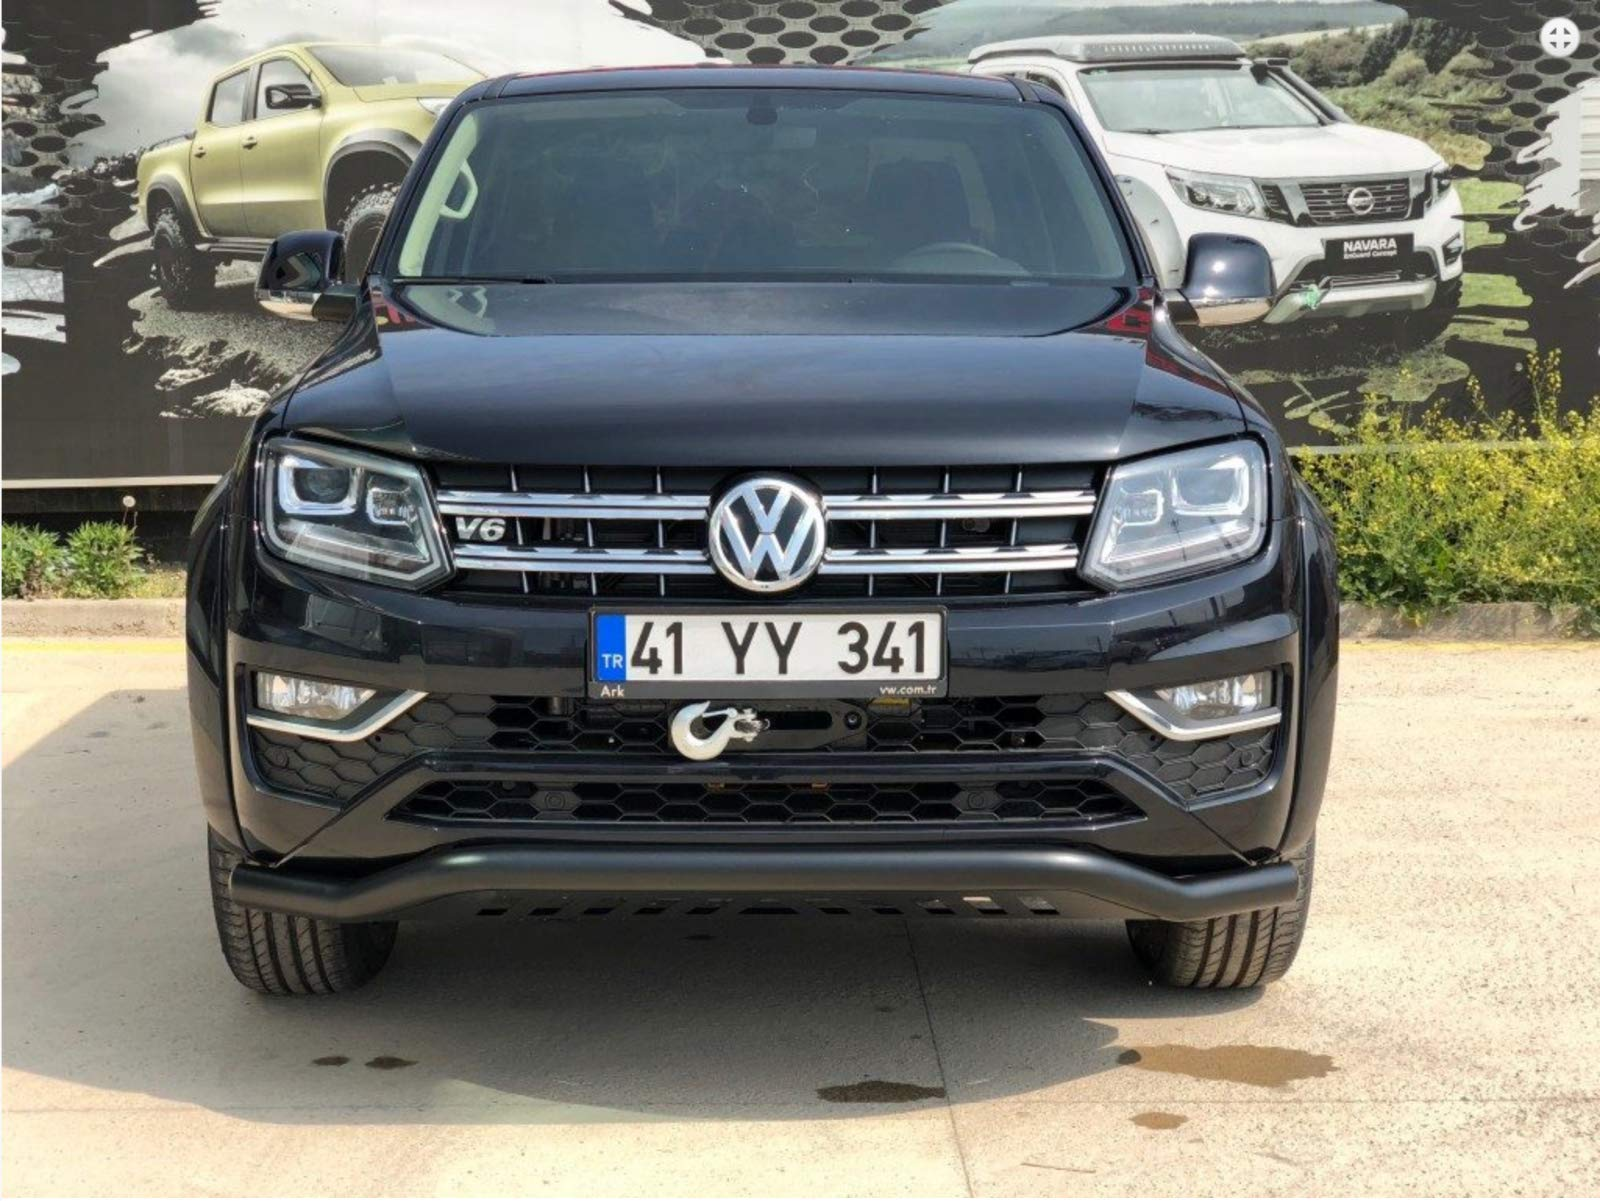 VW AMAROK SPOILER BAR BULL BAR NUDGE GRILL GUARD CITY GUARD 2010-2016